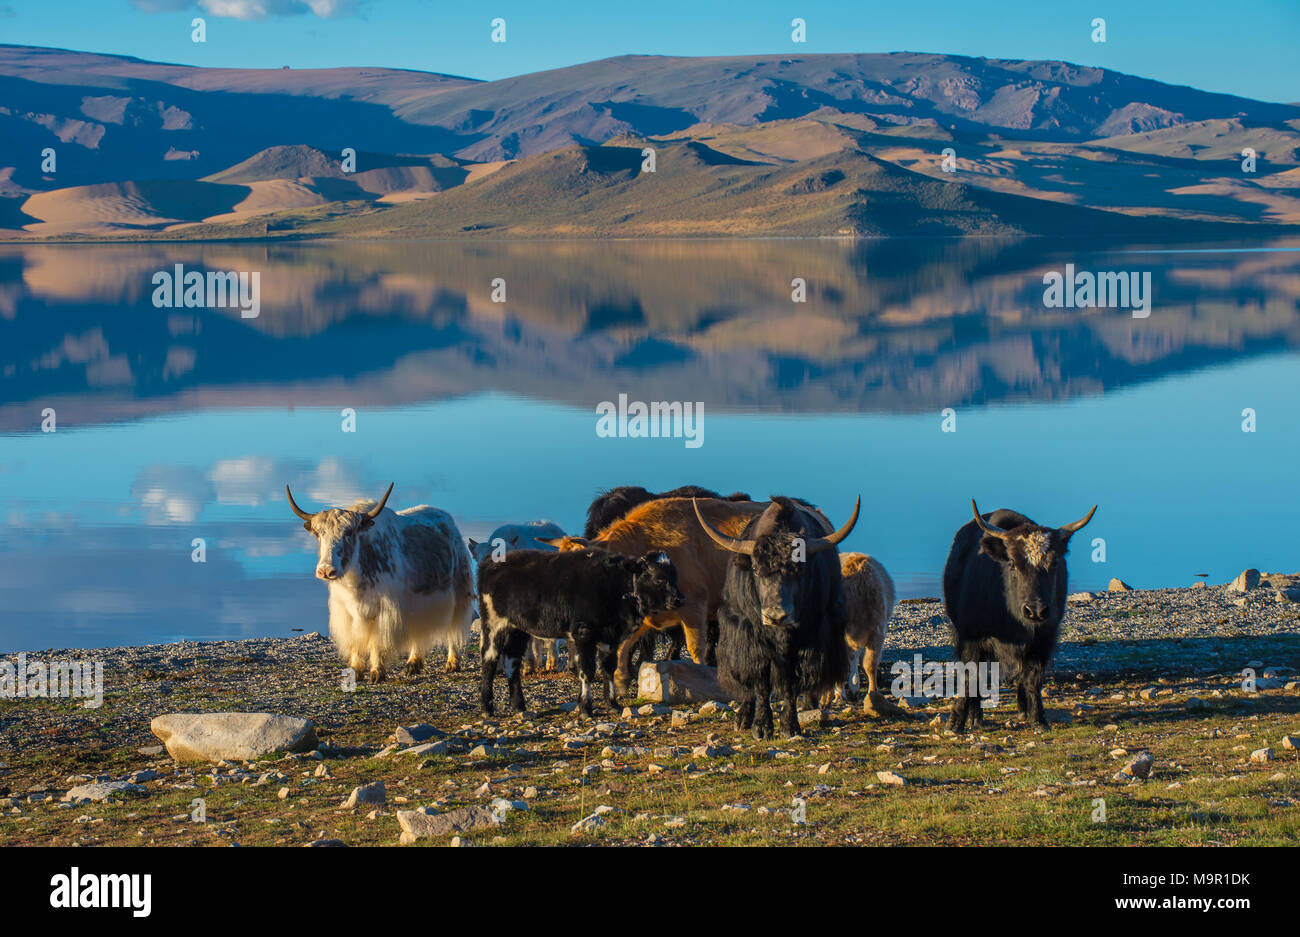 Flock of yaks (Bos grunniens) on the banks of Black lake, Mongolia - Stock Image